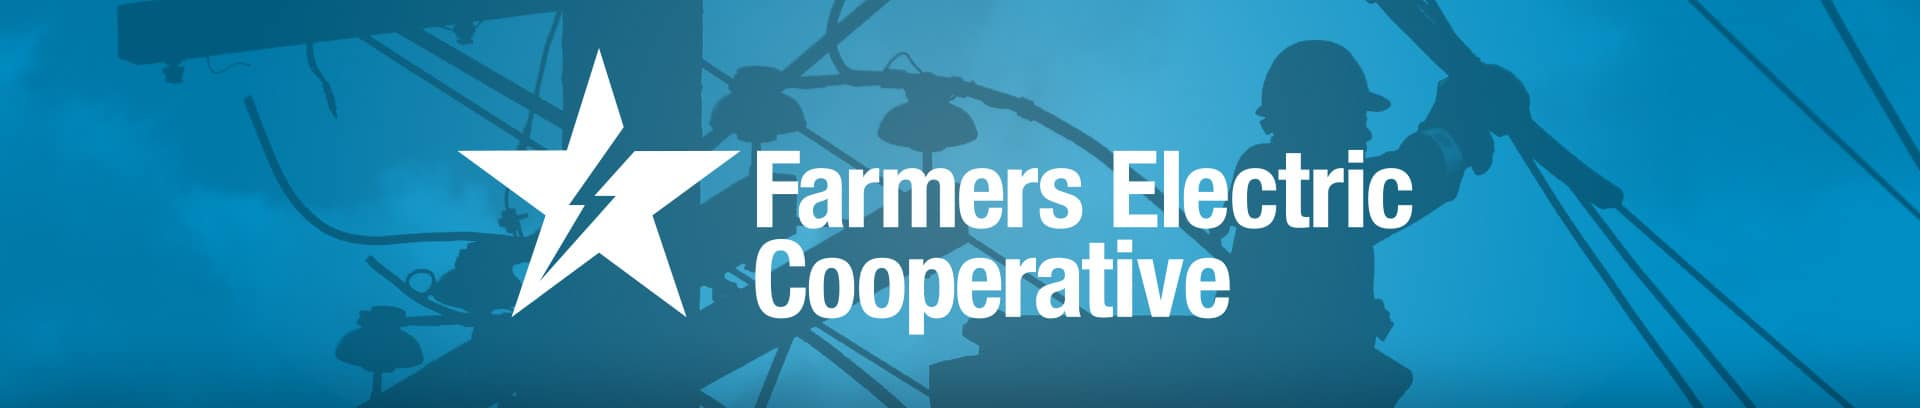 Farmers Electric Cooperative Branded Campaign